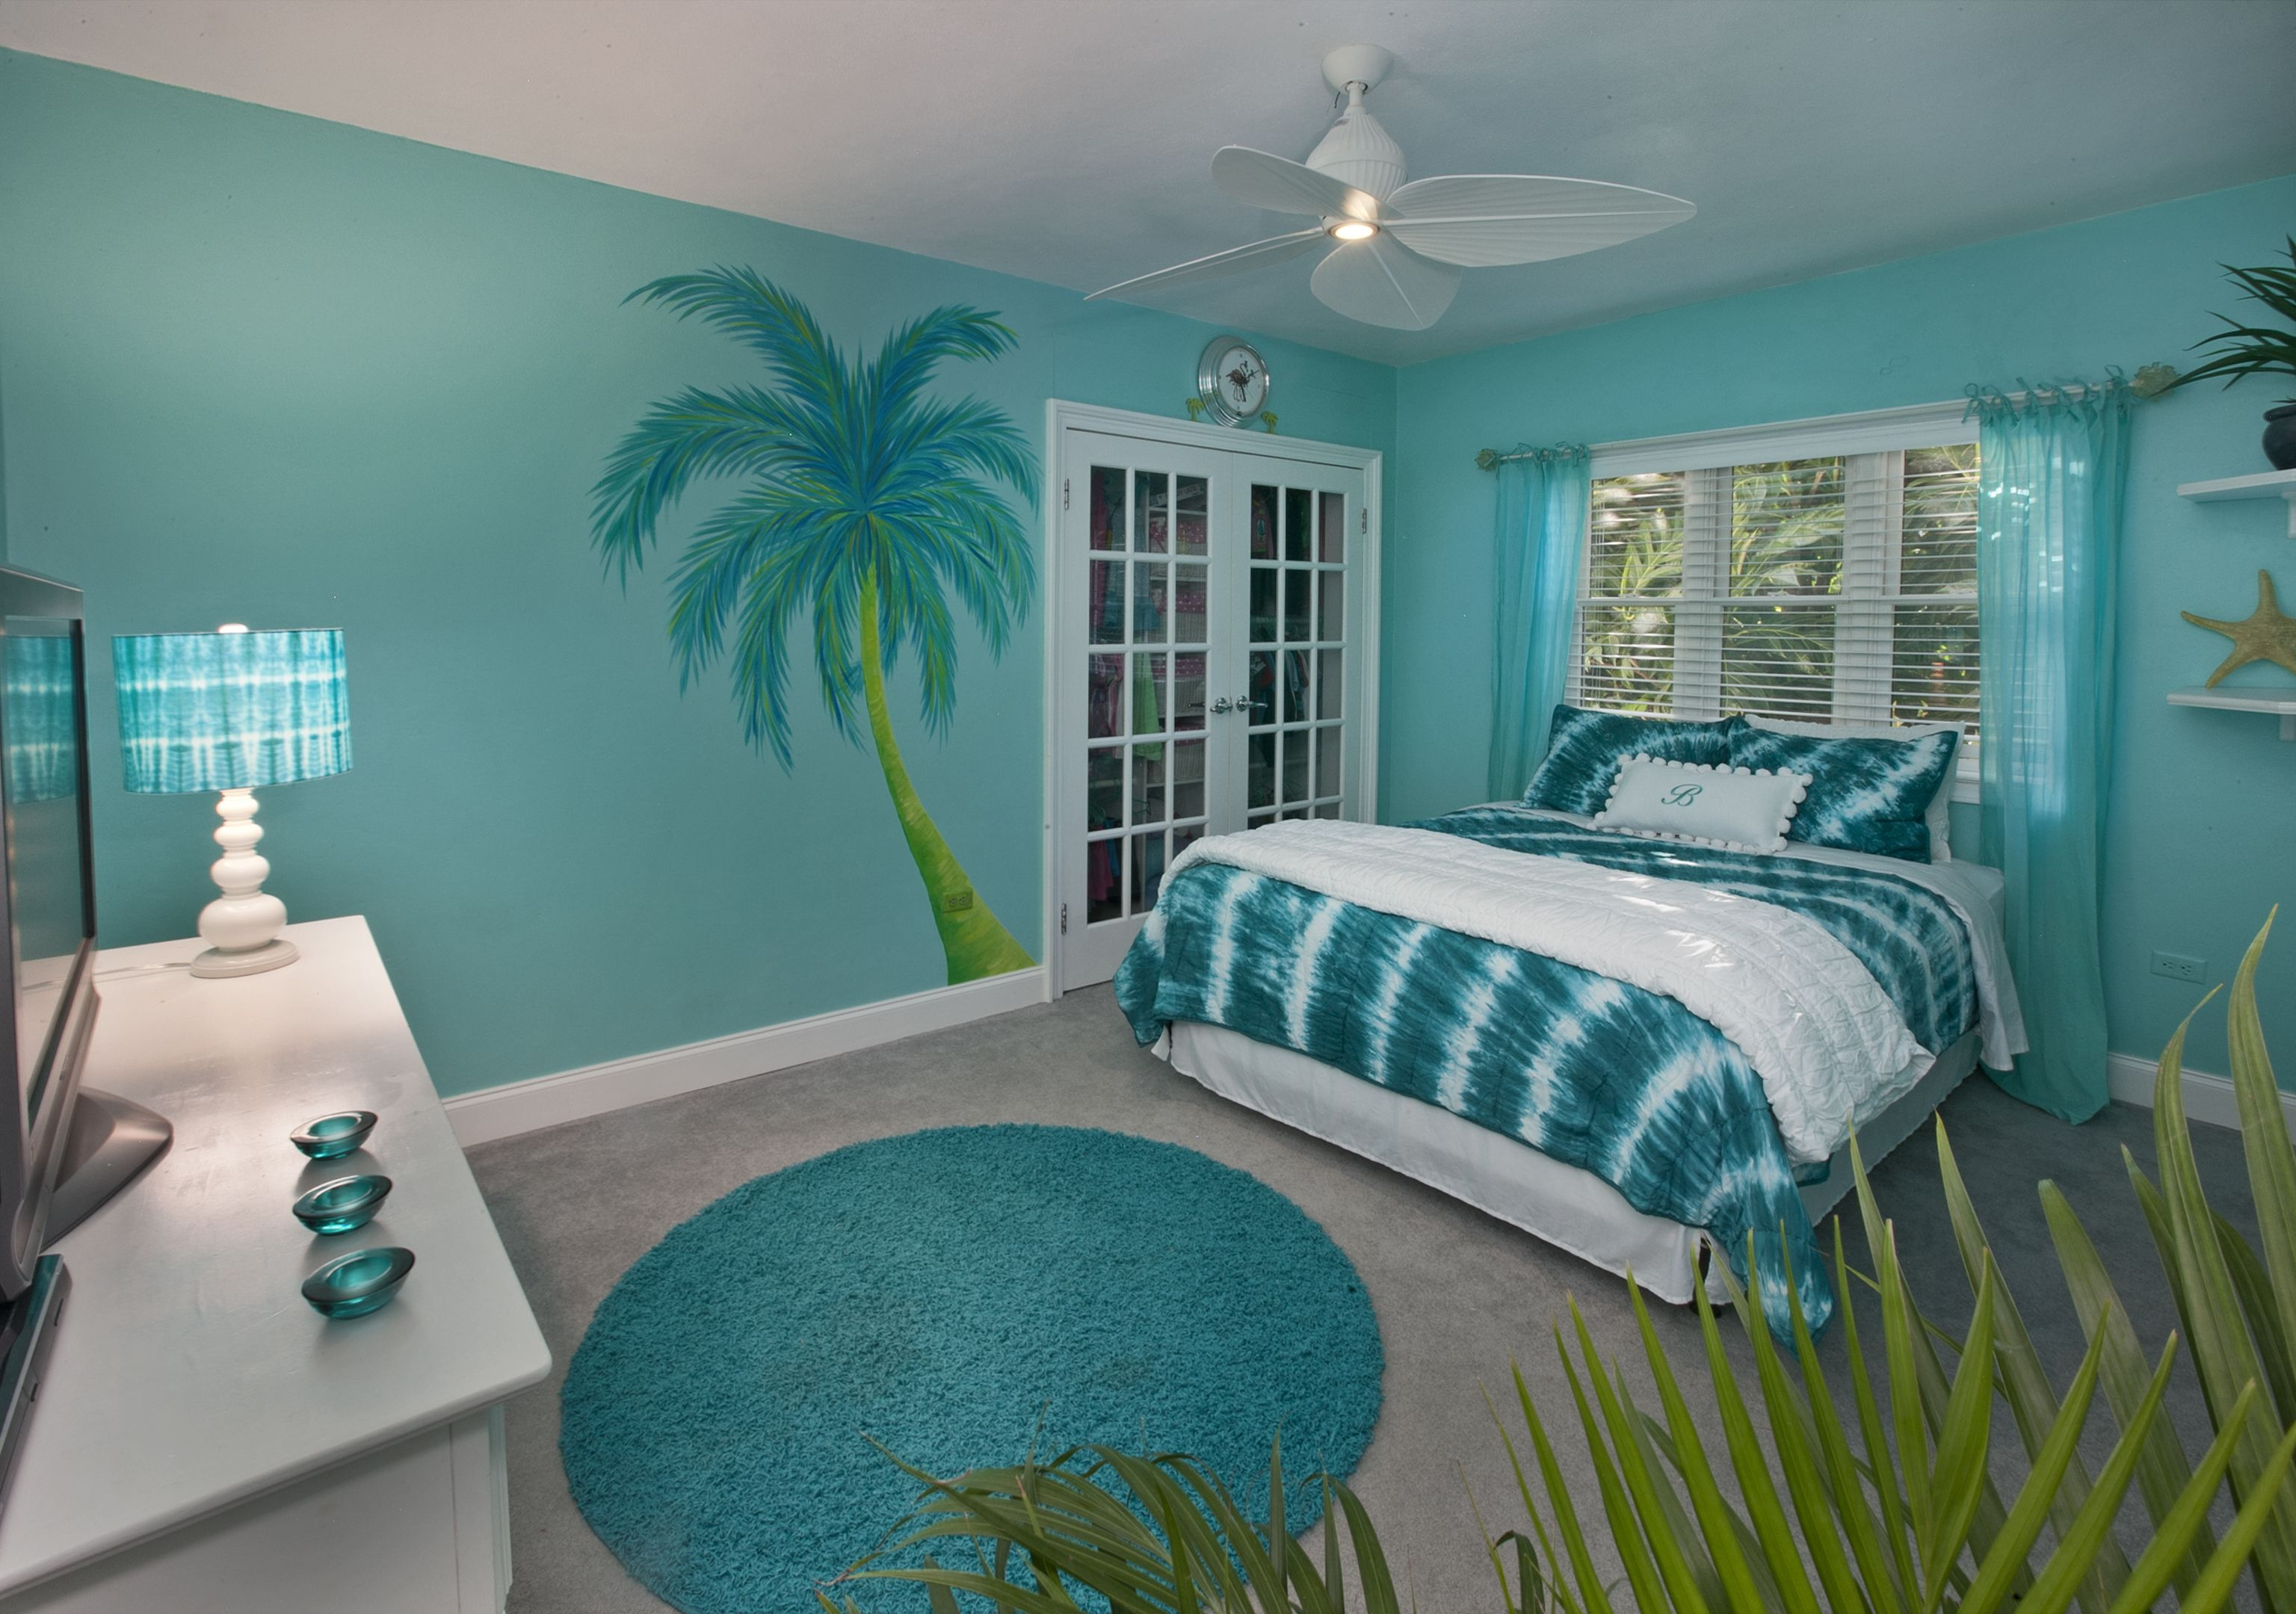 My Dream Color For A Bedroom Turquoise Room Bedroom Turquoise